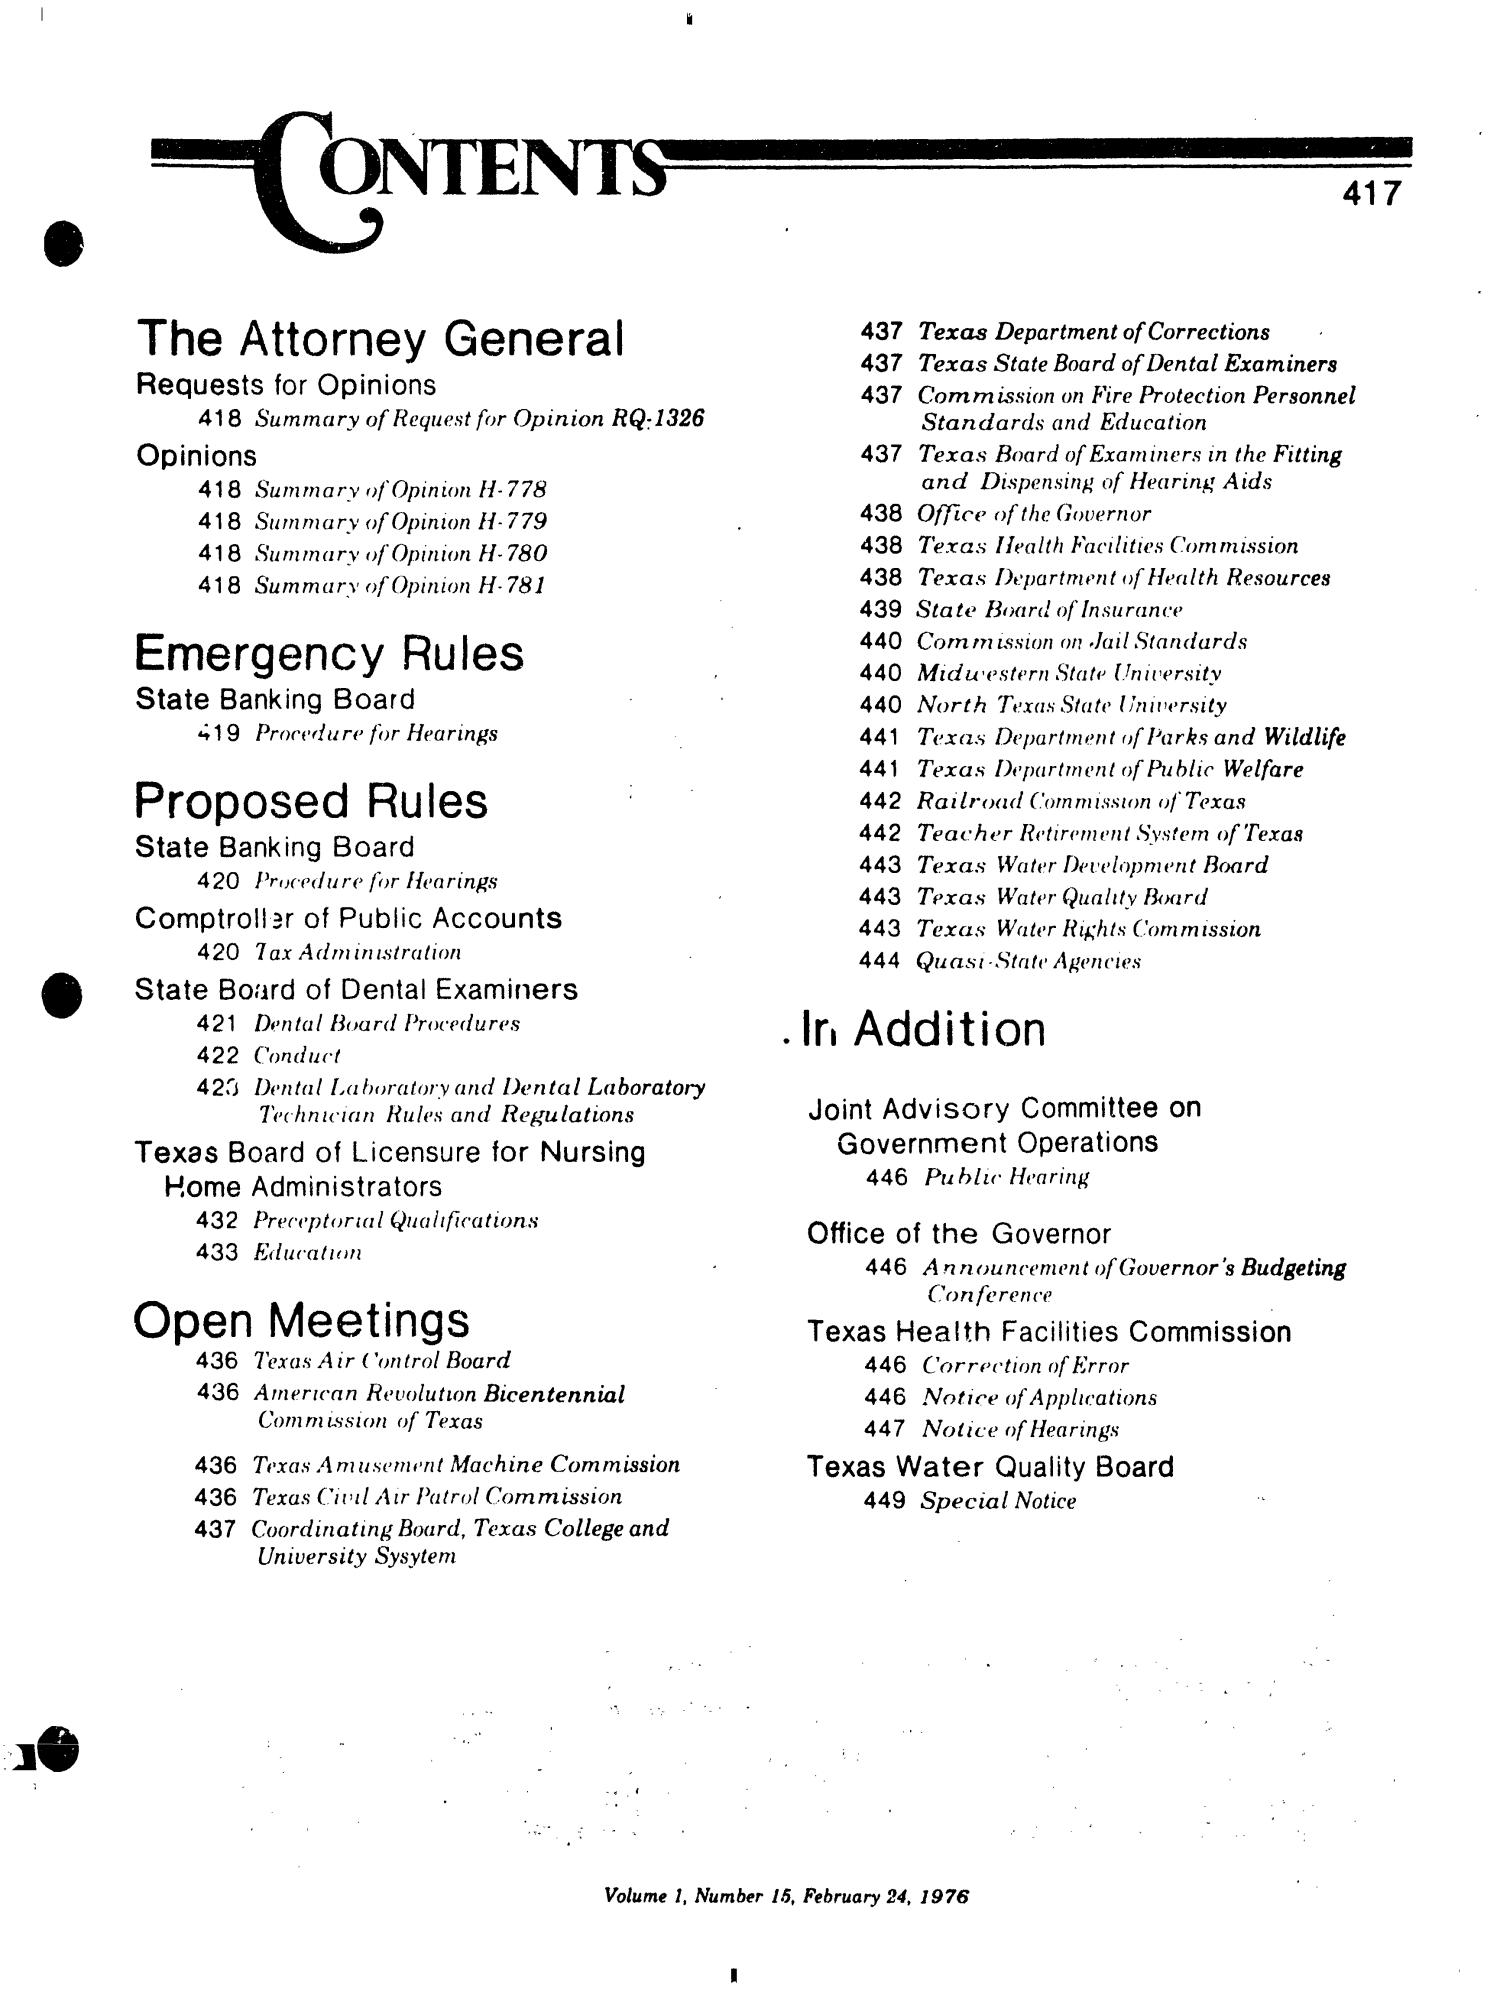 Texas Register, Volume 1, Number 15, Pages 415-450, February 24, 1976                                                                                                      417